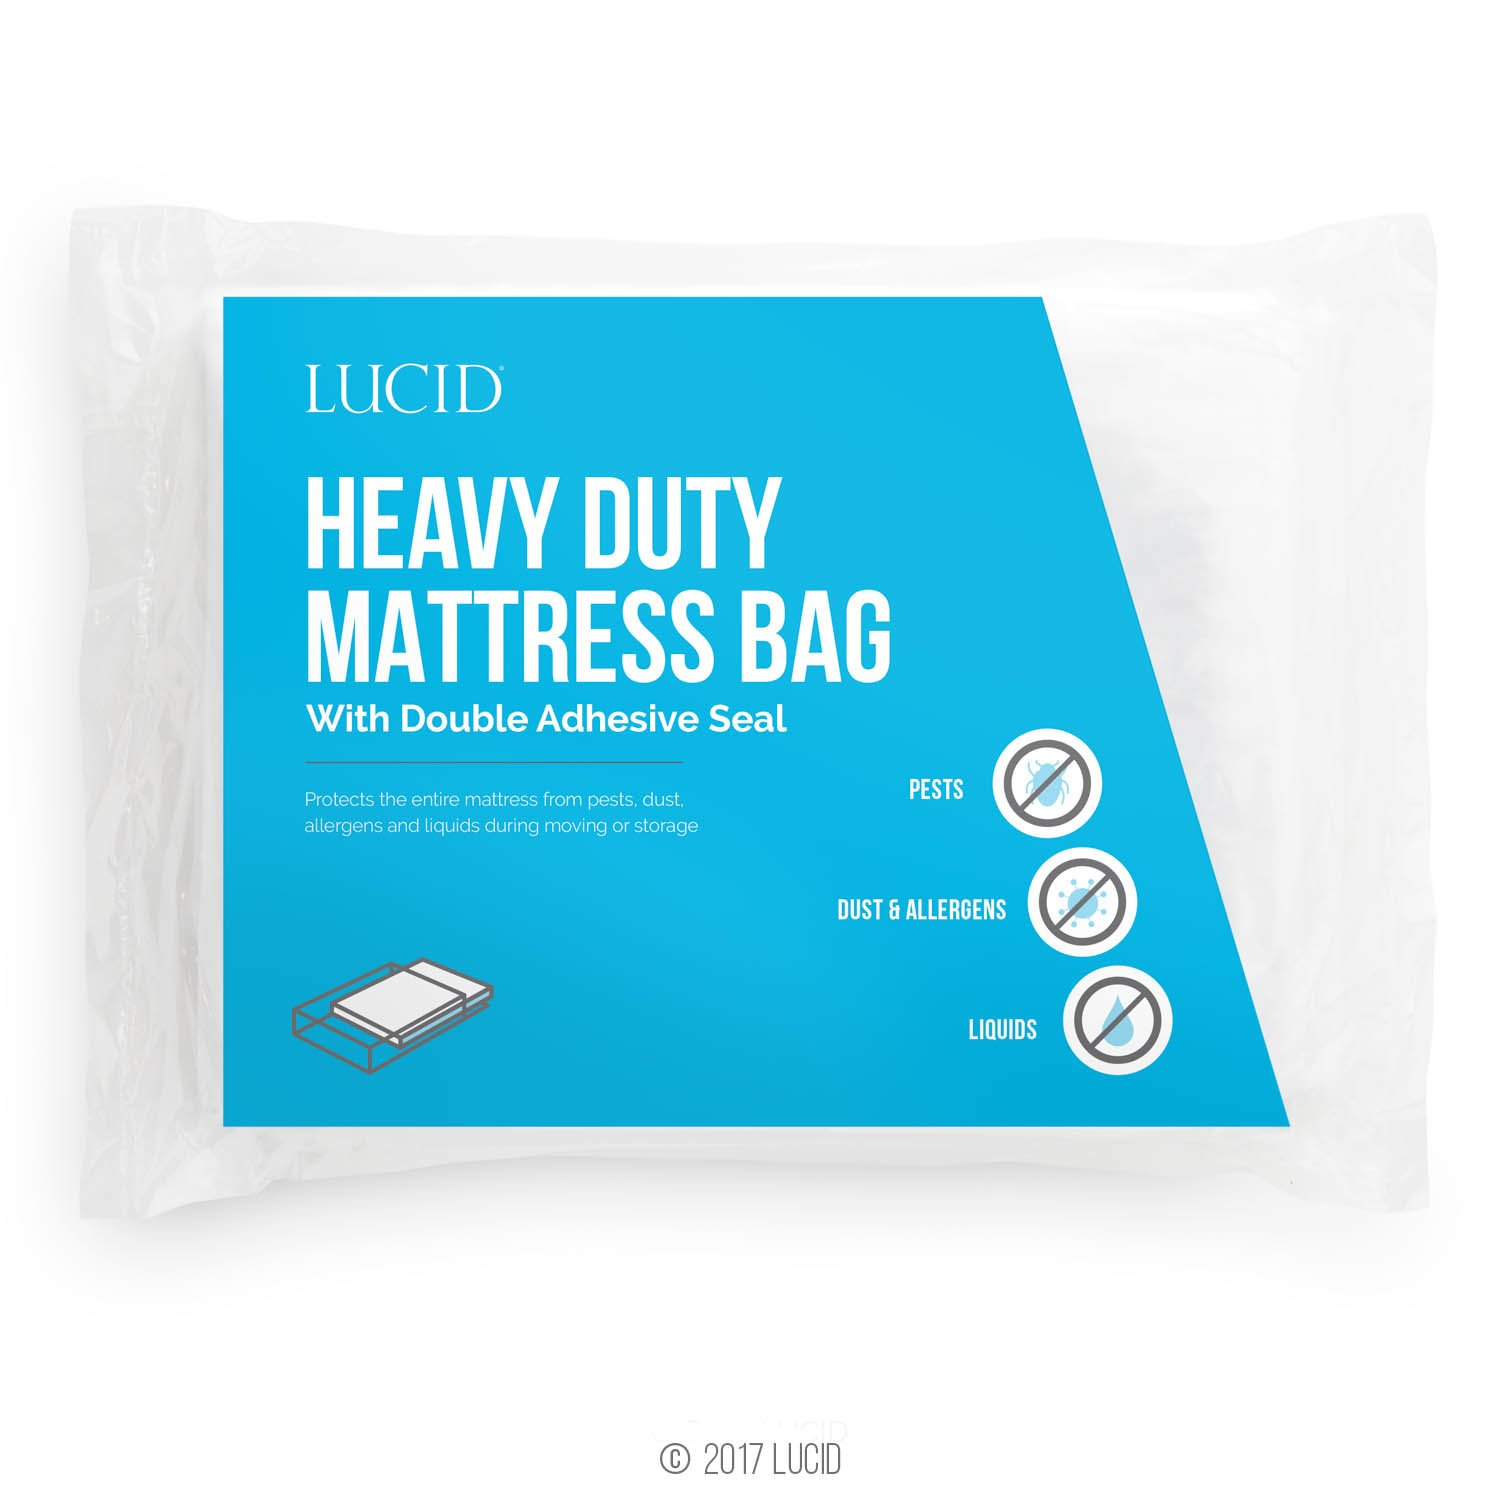 LUCID Heavy Duty 3 mil Mattress Bag with Double Adhesive Closure - Sealable Cover for Moving and Storage - Twin LU01TXMB